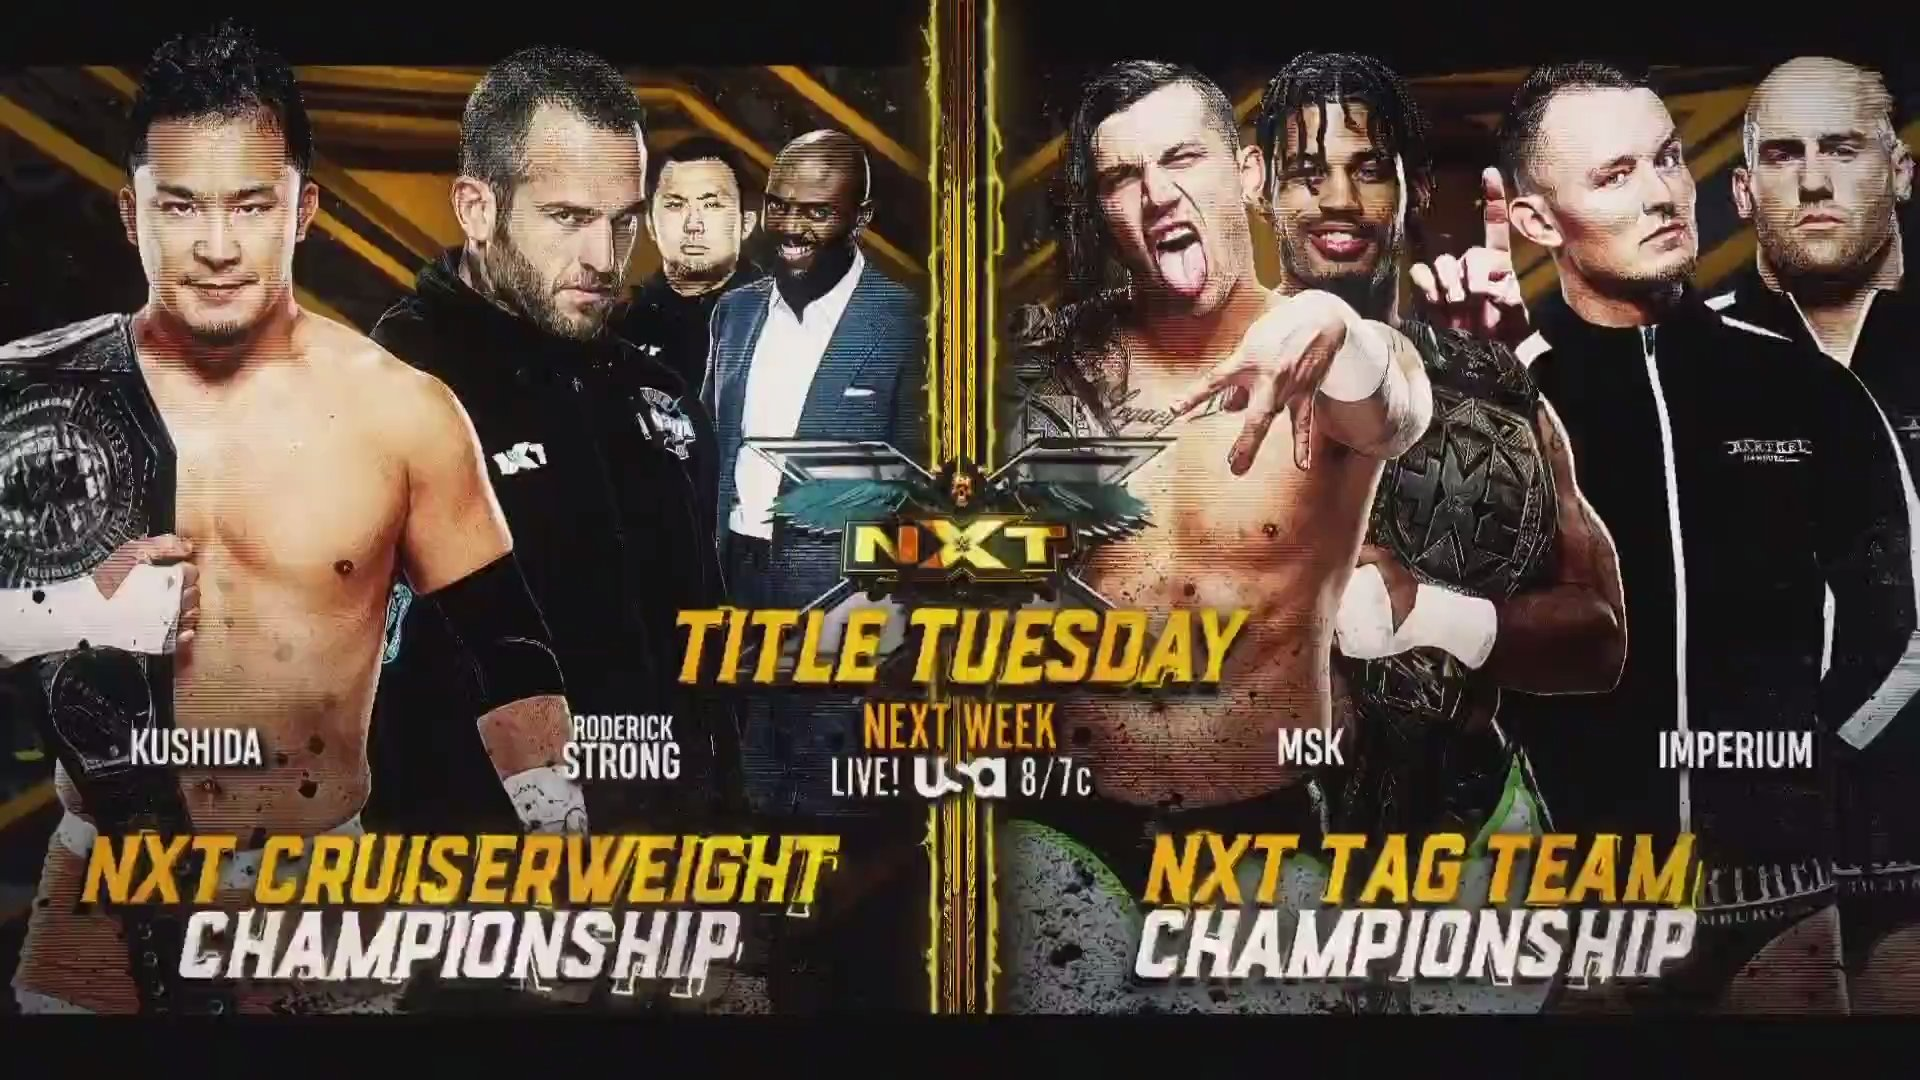 WWE NXT Title Tuesday Announced Before TakeOver 36 18